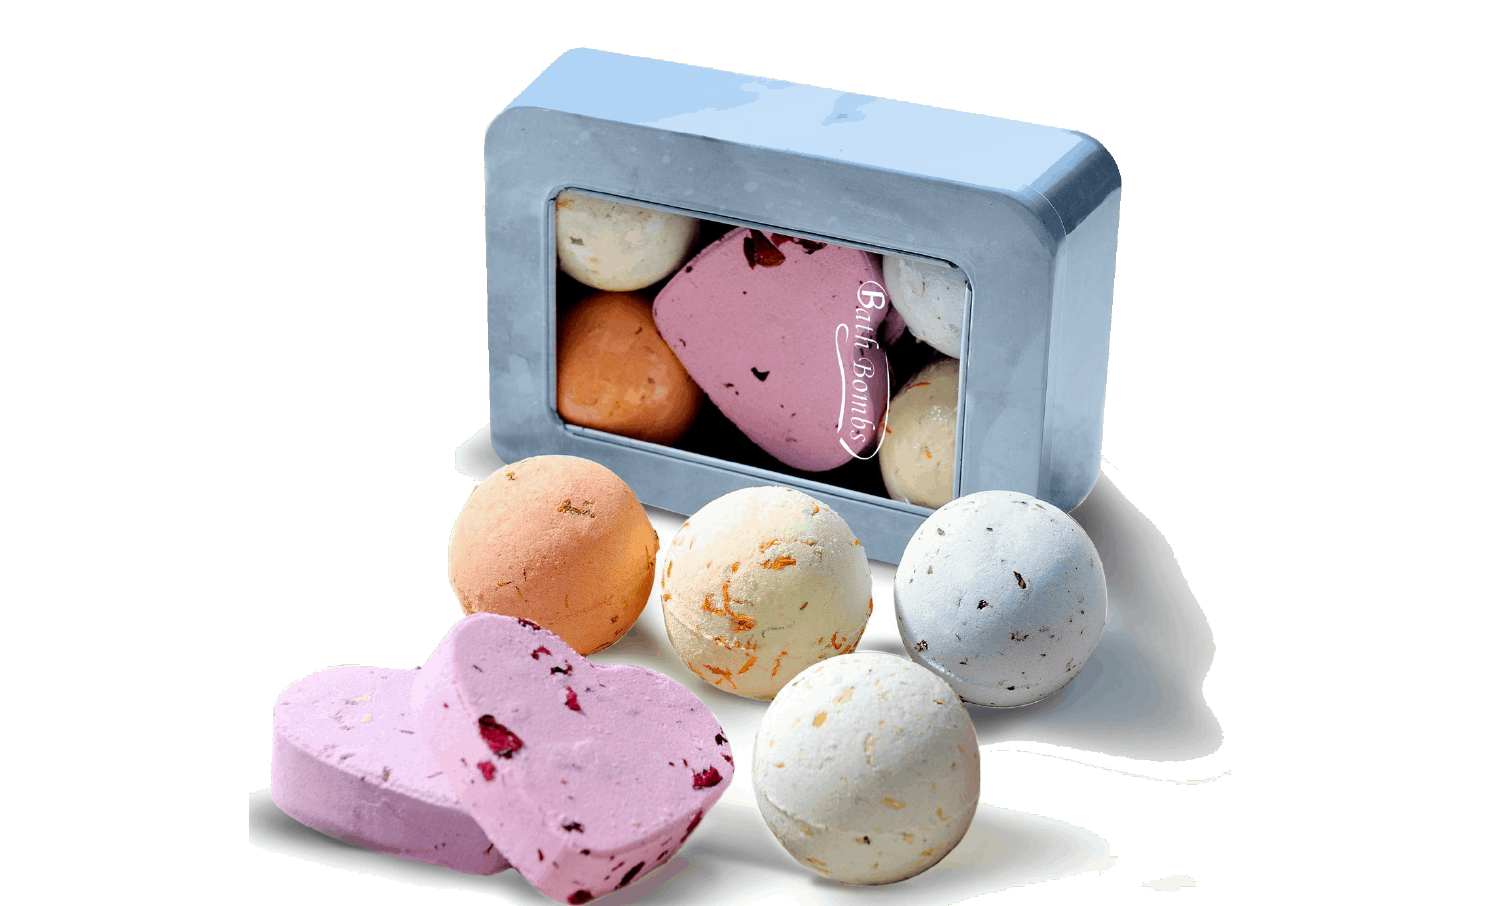 A light blue box of Bath Bombs